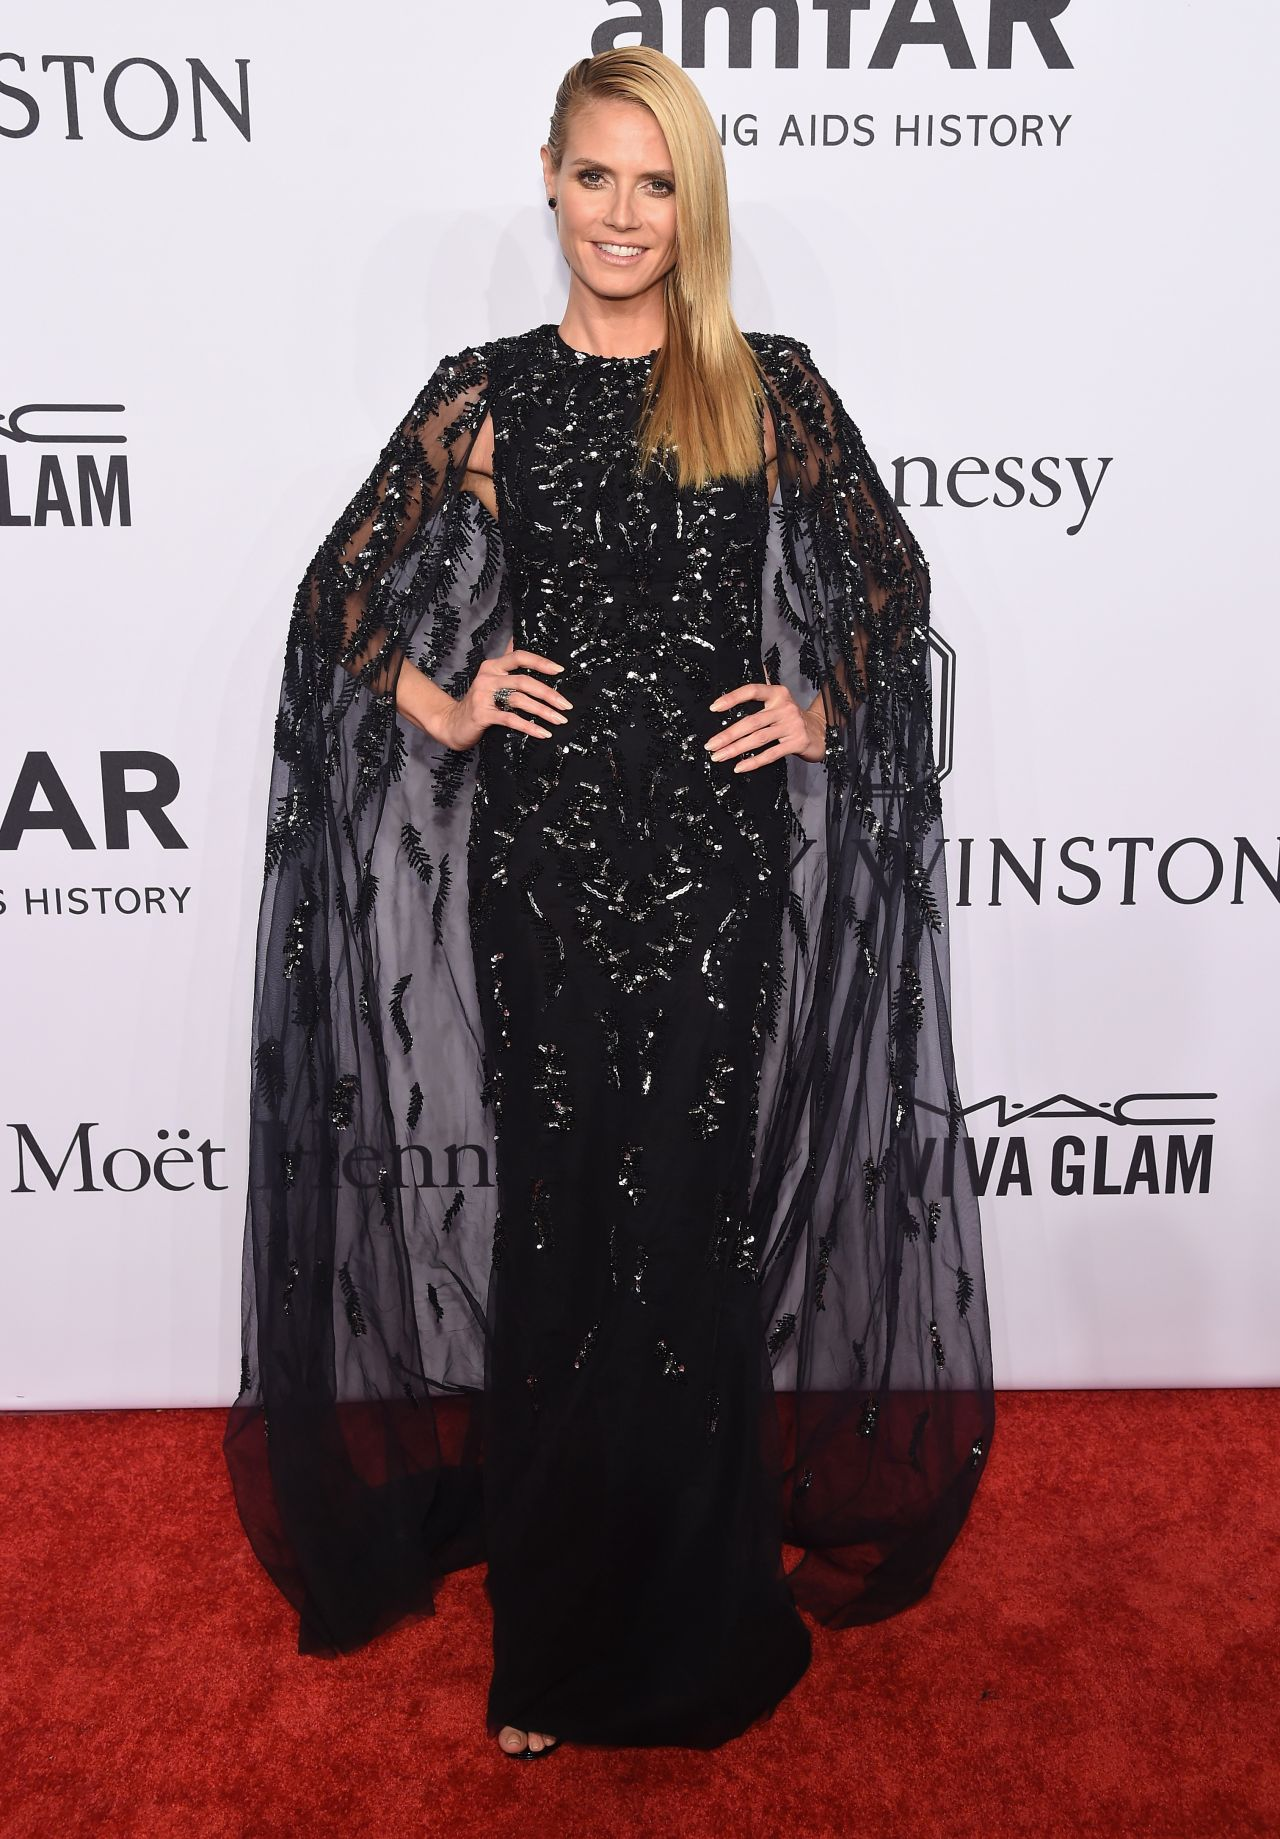 heidi-klum-2016-amfar-new-york-gala-in-new-york-city-ny-1